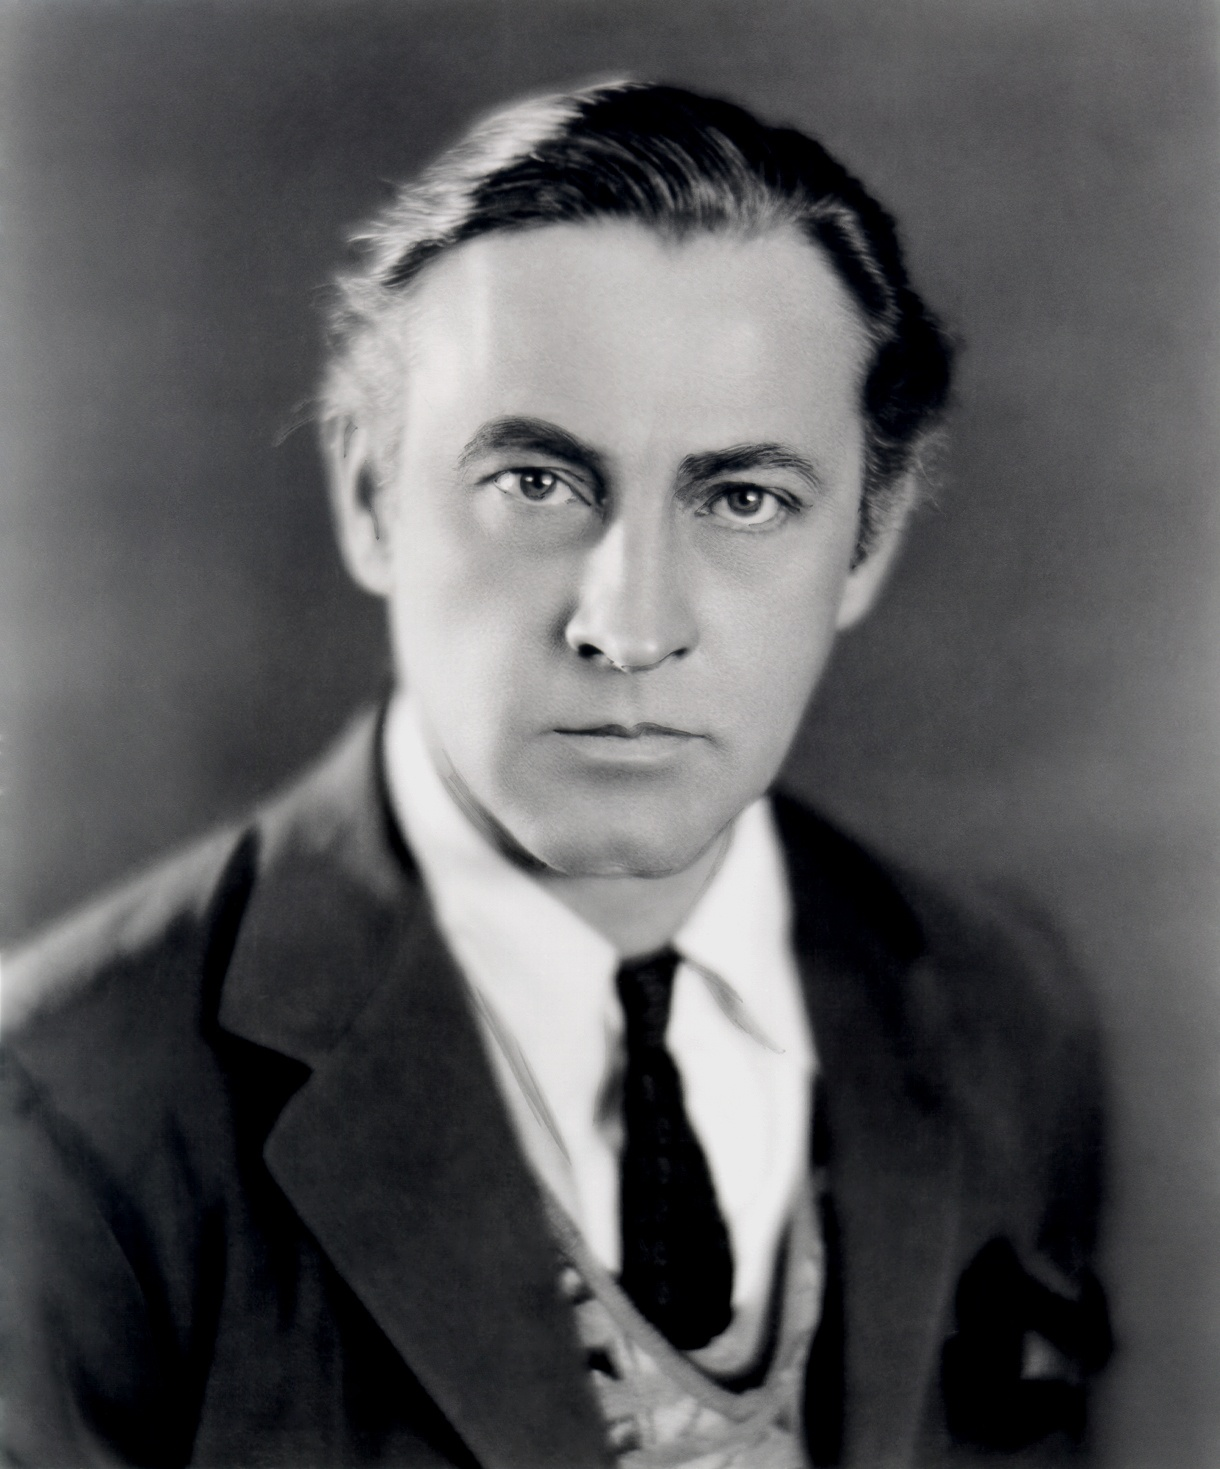 john barrymore iiijohn barrymore jr, john barrymore movies, john barrymore hamlet, john barrymore iii, john barrymore actor, john barrymore jr movies, john barrymore quotes, john barrymore death, john barrymore biography, john barrymore filmography, john barrymore imdb, john barrymore estate, john barrymore cocktail, john barrymore sherlock holmes, john barrymore net worth, john barrymore grand hotel, john barrymore duff and phelps, john barrymore jr pictures, john barrymore art, john barrymore totem